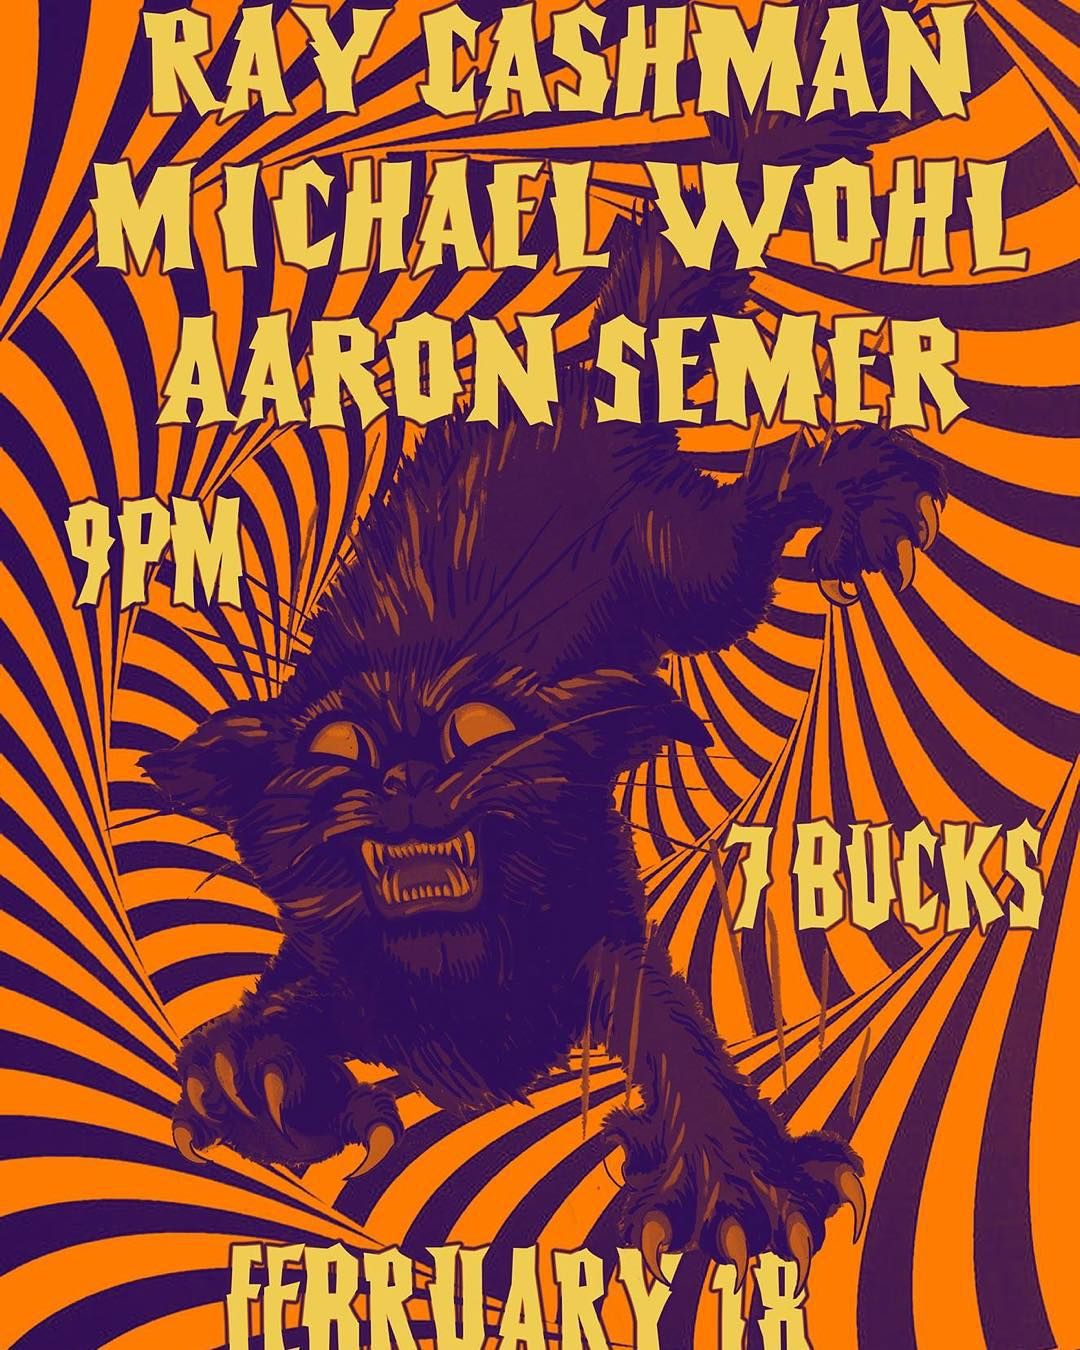 Ray Cashman, Michael Wohl and Aaron Semer at Tim's Tavern, Seattle on February 18 don't miss this acoustic triple threat. @m_wohl @aaronsemer #knickknackrecords #seattlemusicians #seattlebands #seattlemusic #seattlelivemusic #livemusic #acousticguitar #guitars #music